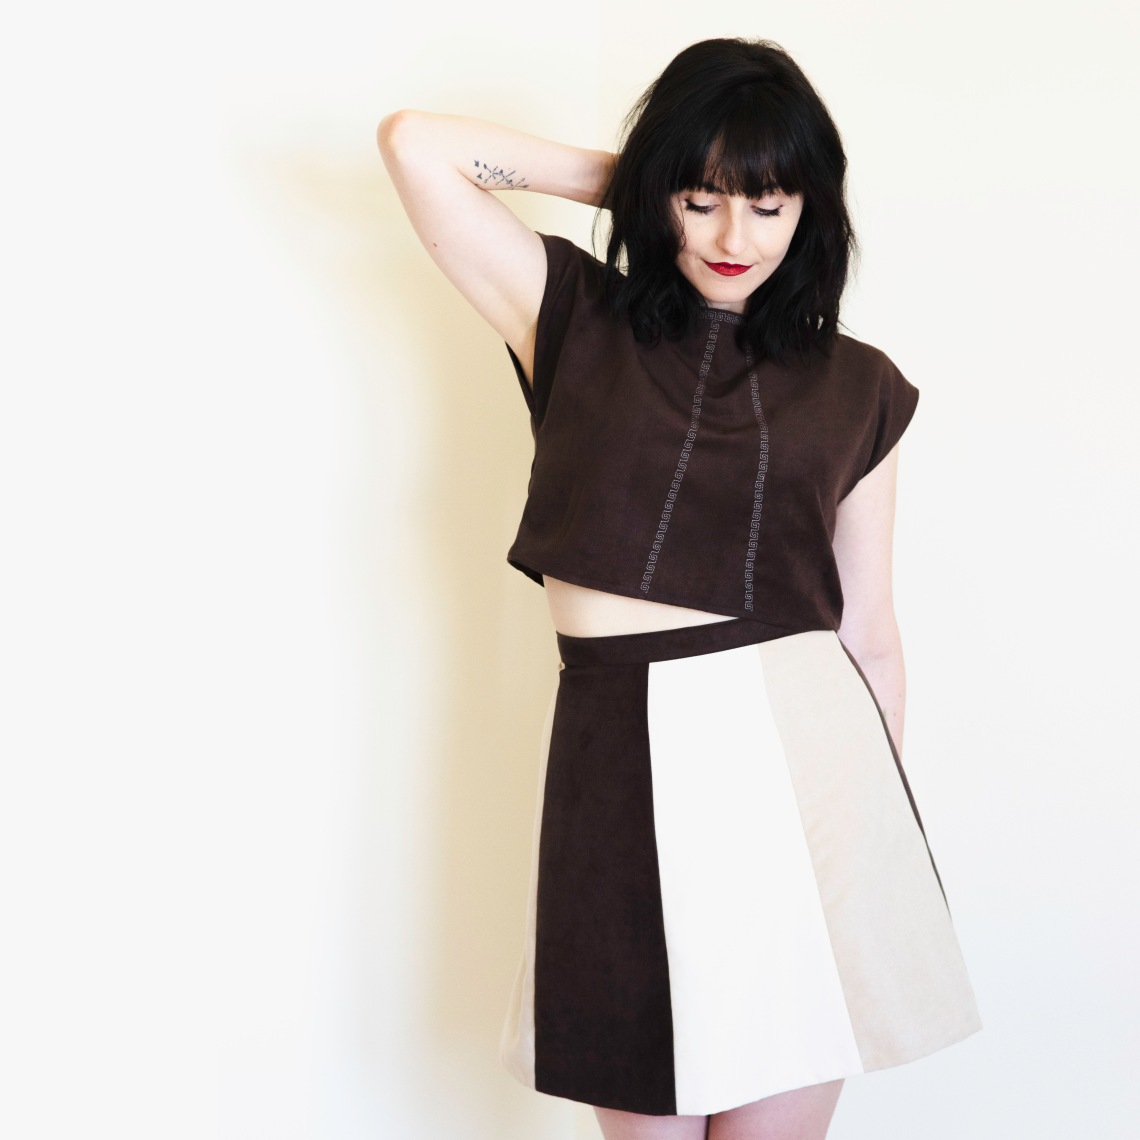 vegan-suede-skirt-top-03